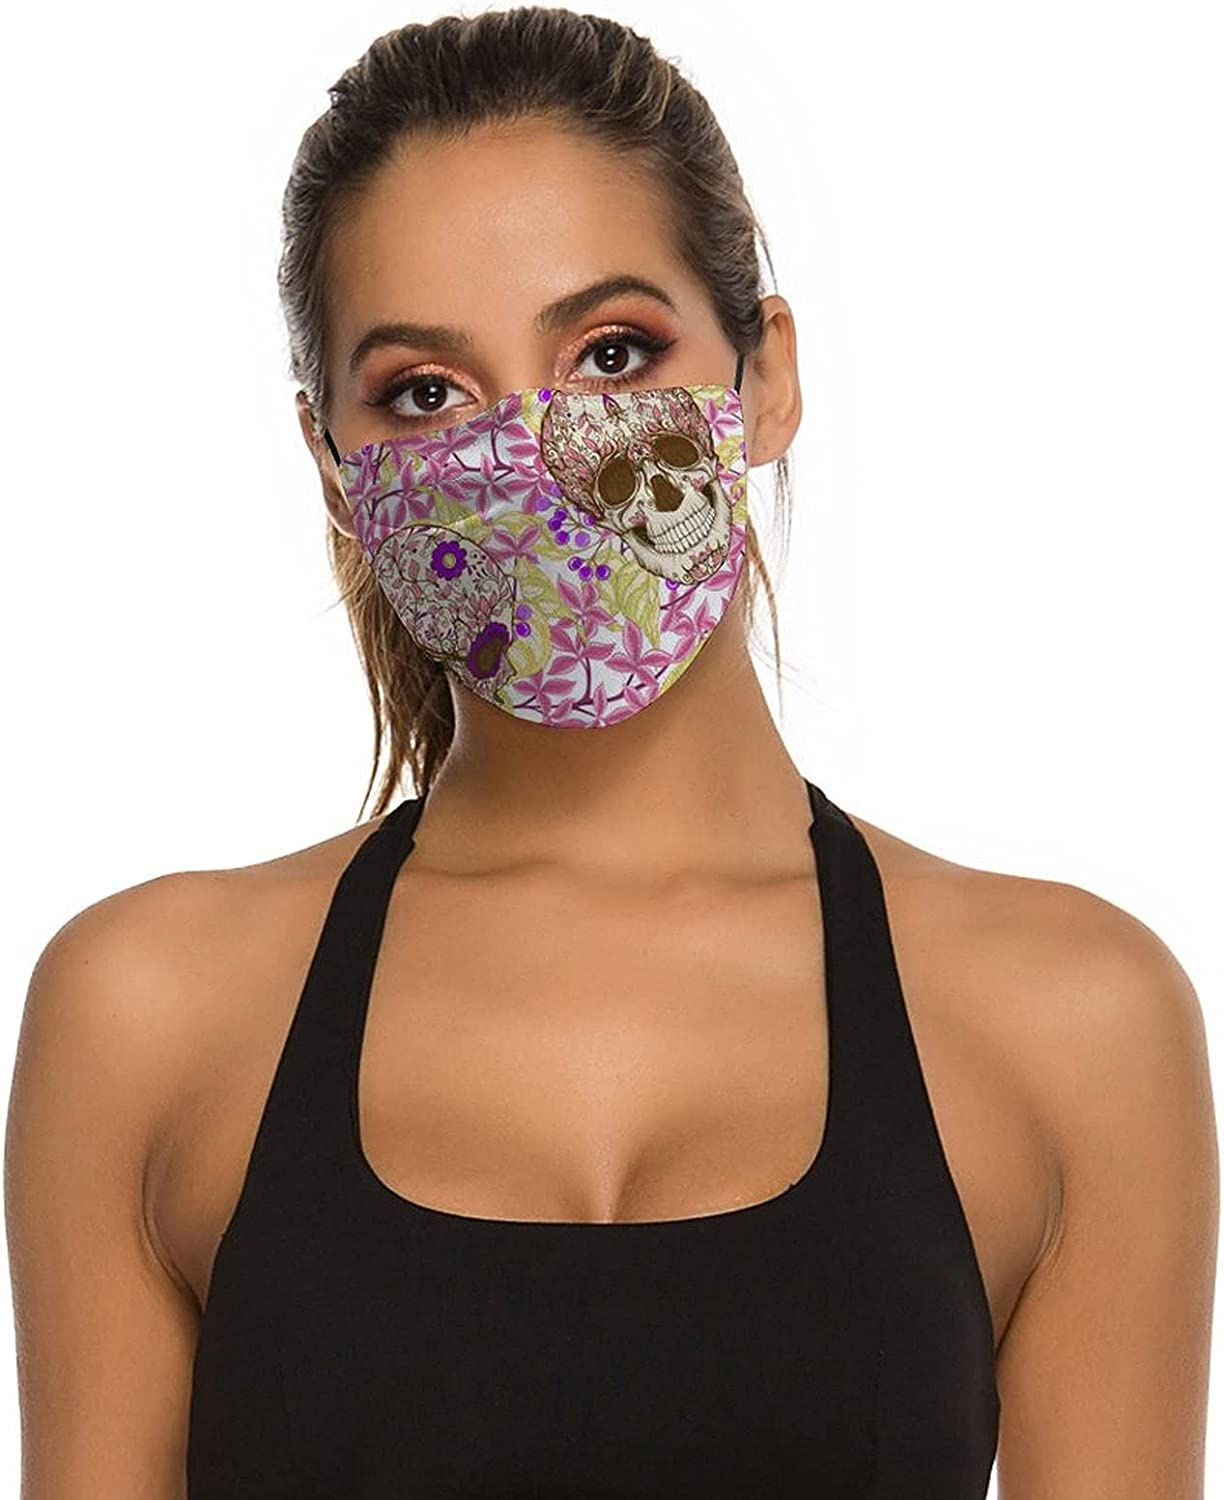 Adult Washable Face Masks,Adjustable Face Covering with with 2 Filters